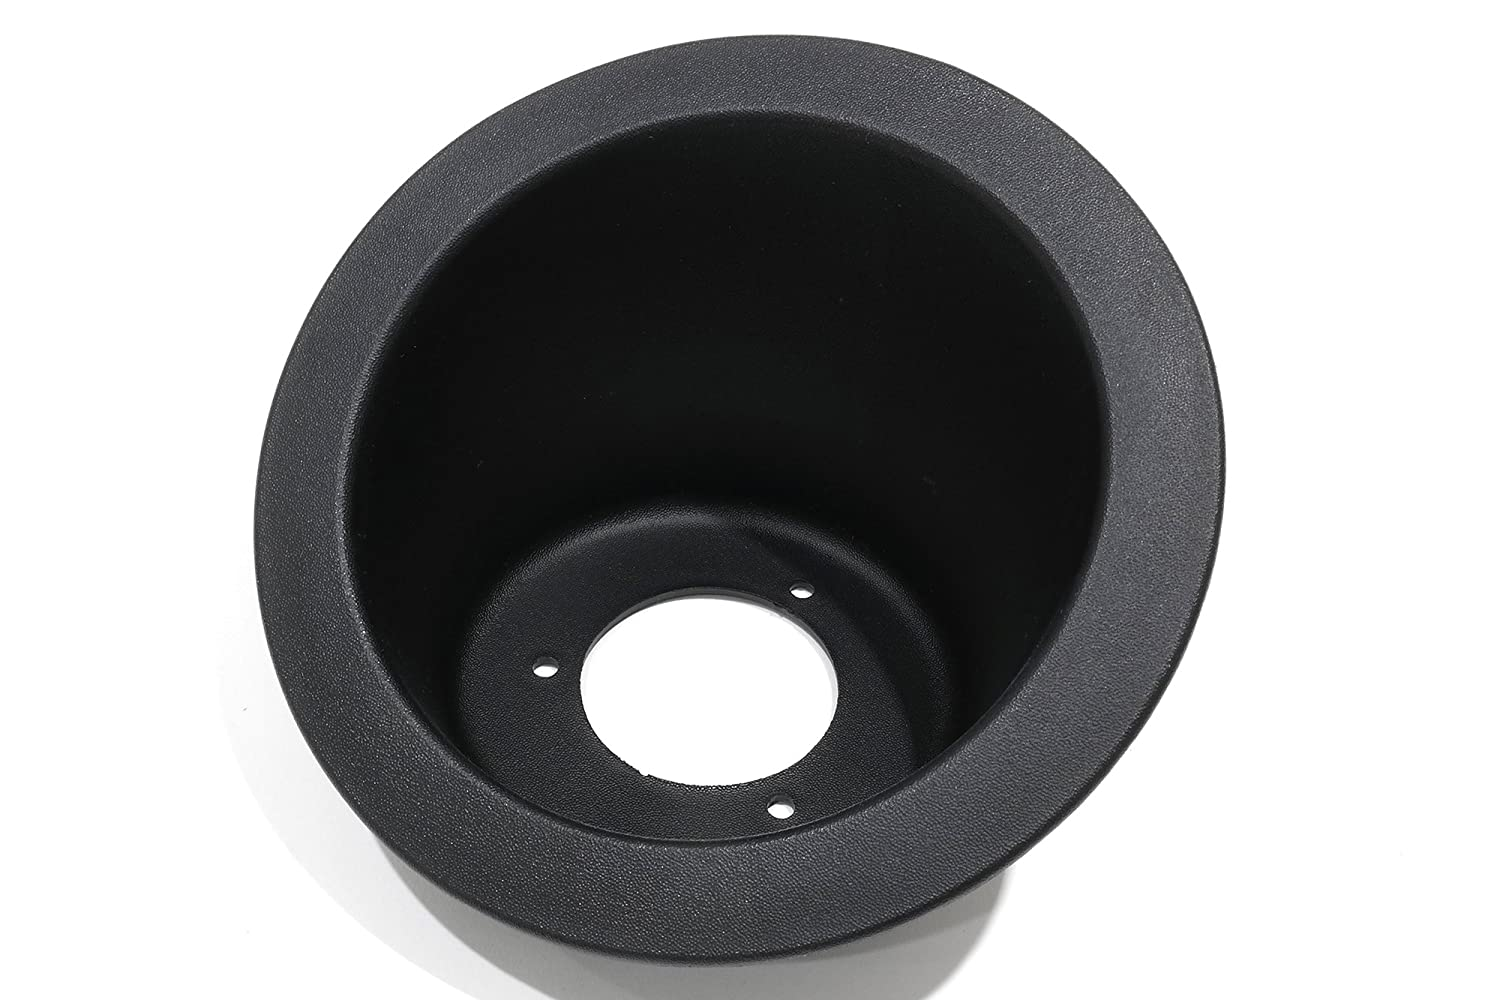 OEM NEW Fuel Door Neck Filler Pocket Housing Bezel 12-12 Hummer H12  159012412 | hummer h3 gas cap cover